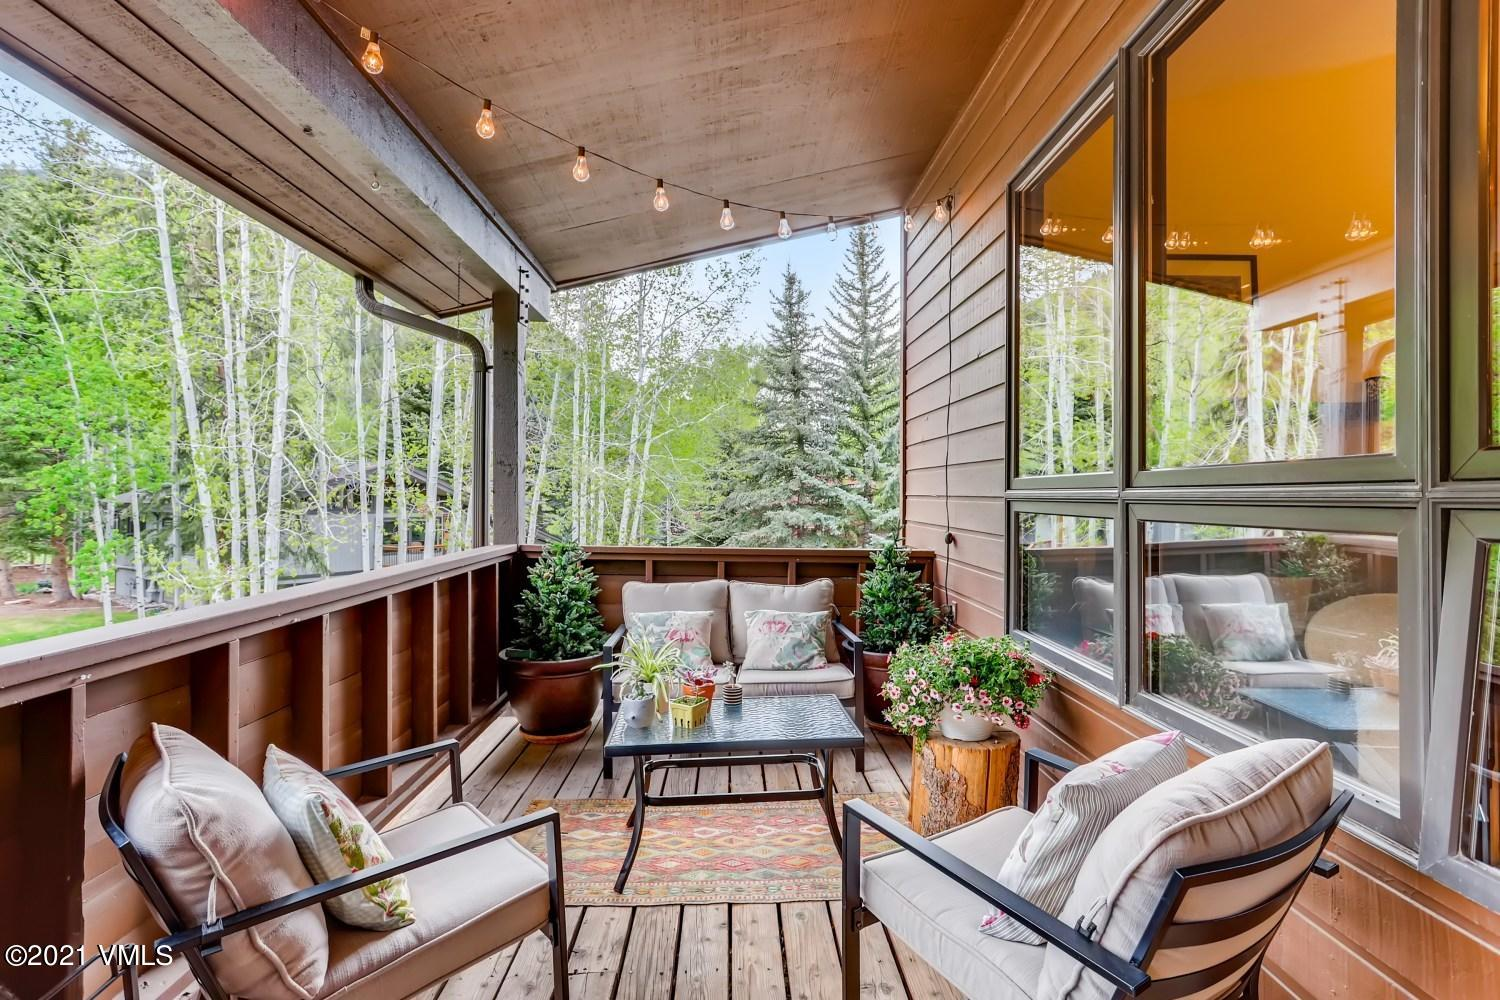 Possibly the best unit in the Par Six complex. 3 bedroom, 2 bath, 1296 sq.ft., corner unit with a large covered deck will give you plentiful space, abundance of light and peace. Located in the desirable Eagle-Vail neighborhood, this unit has vaulted ceilings, large windows, wood burning fireplace, and open living room concept. The spacious and private master bedroom with ensuite bath is on its own level with a landing area to have your home office or gym. On the lower level, 2 bedrooms with a shared full bath and a large laundry room with built in shelves is a plus. This residence is a great option for first time homebuyers or a second homeowner with the possibility to long or short term rent. Eagle-Vail community offers a swimming pool, public golf course, a large pavilion, parks, hiking and biking.  Enjoy walks on the golf course, gather with friends at the pool or play a quick round of golf - all can be a pleasant days event. This is one not to miss.